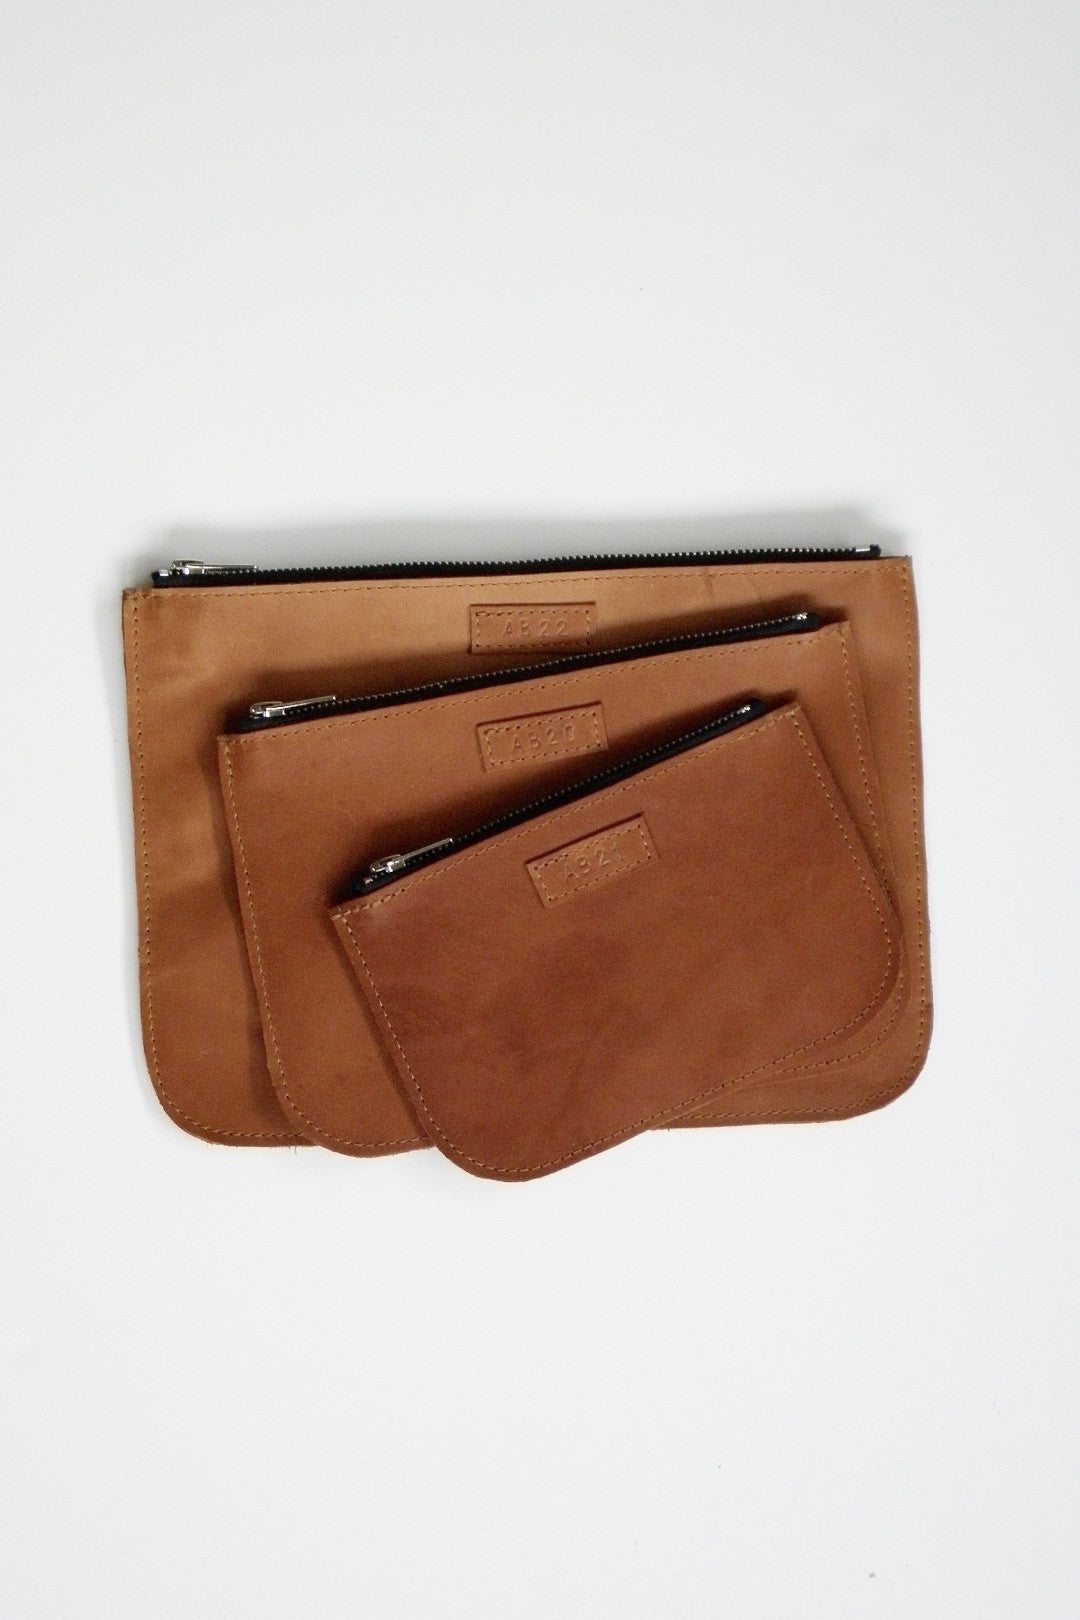 #21 Small Coupe Pouch / Tobacco